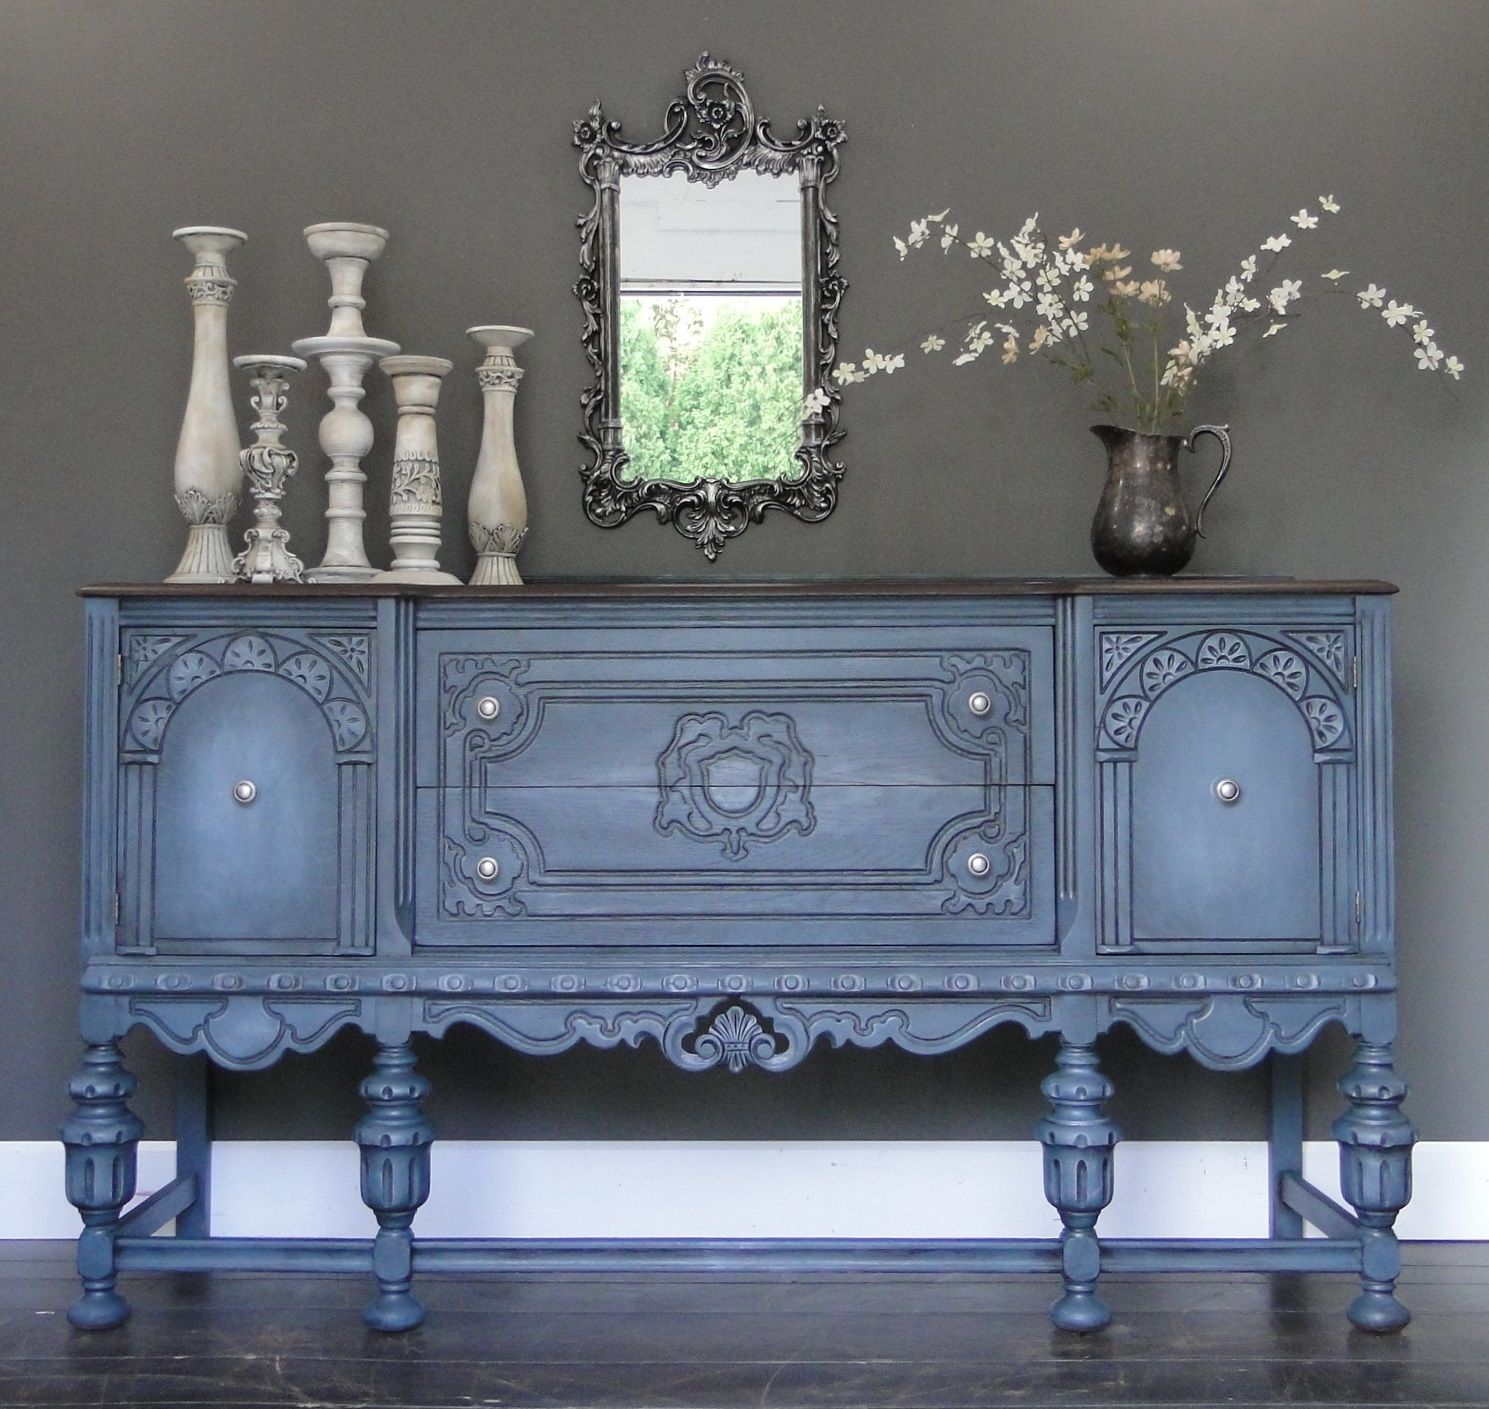 Antique glass flower carvings sideboard crown french furniture - Stormy Ii Blue Gray Carved Oak Buffet Sideboard With Dark Stained Top Modern